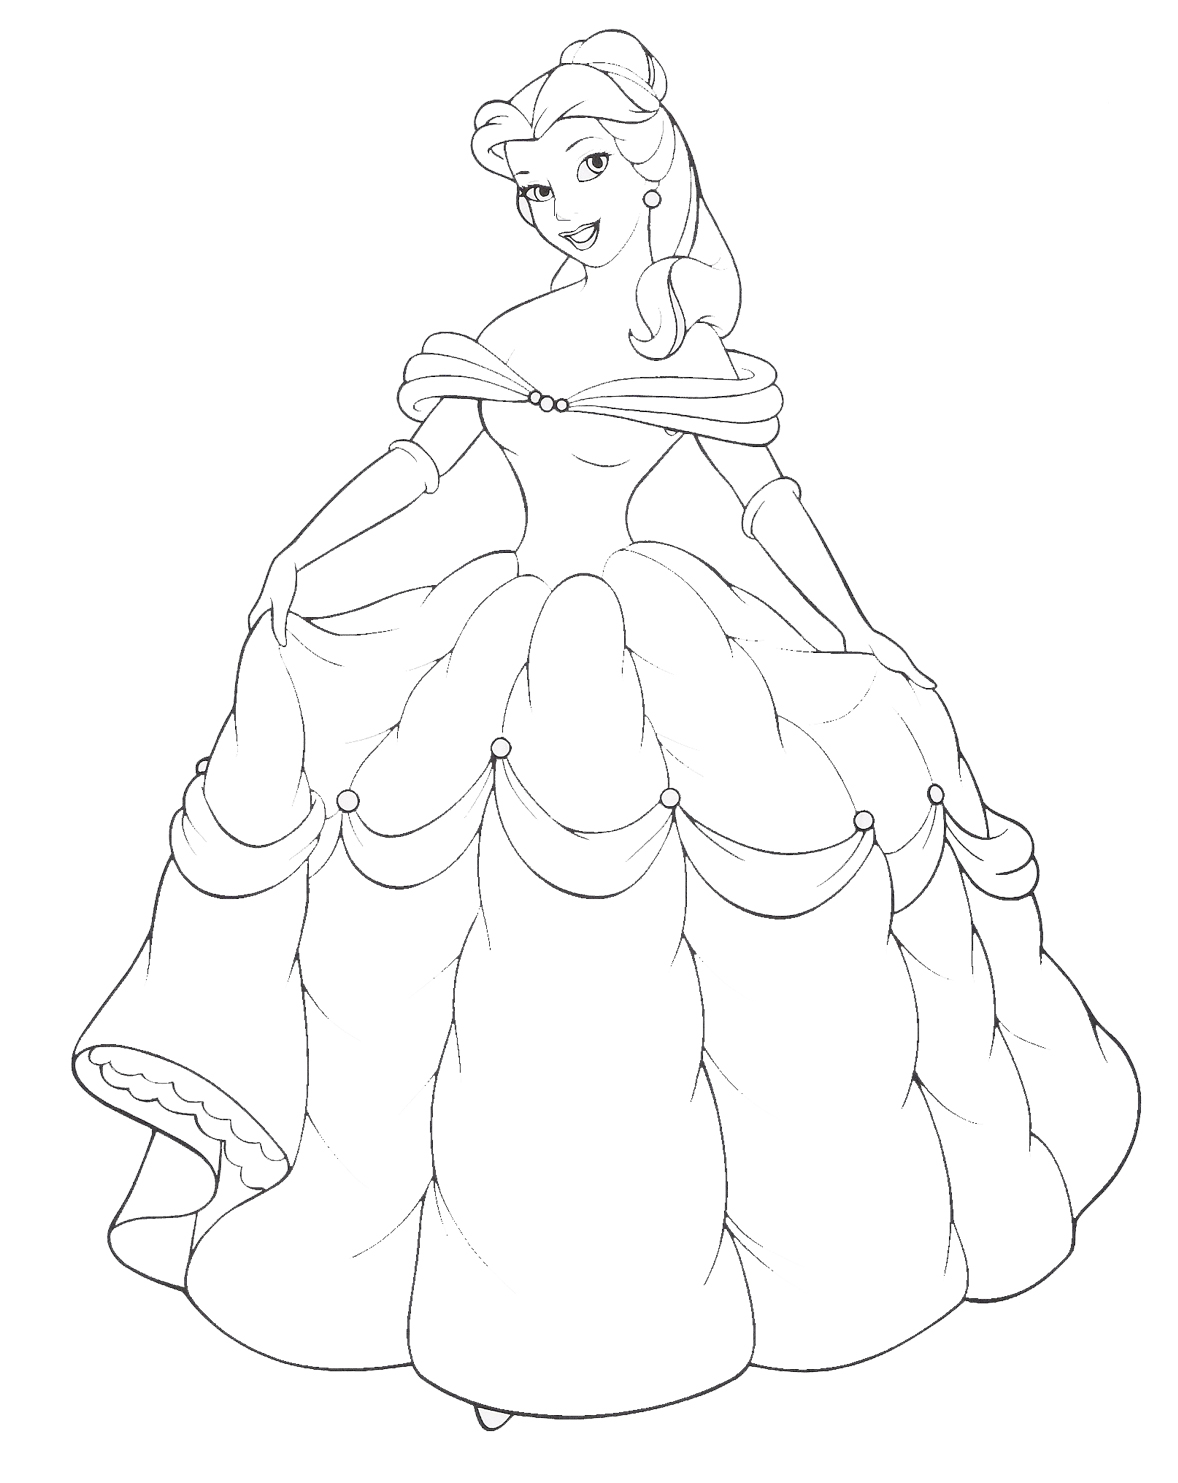 Disney Princess Belle And Her Gown Coloring Sheet Kentscraft Princess Color Page